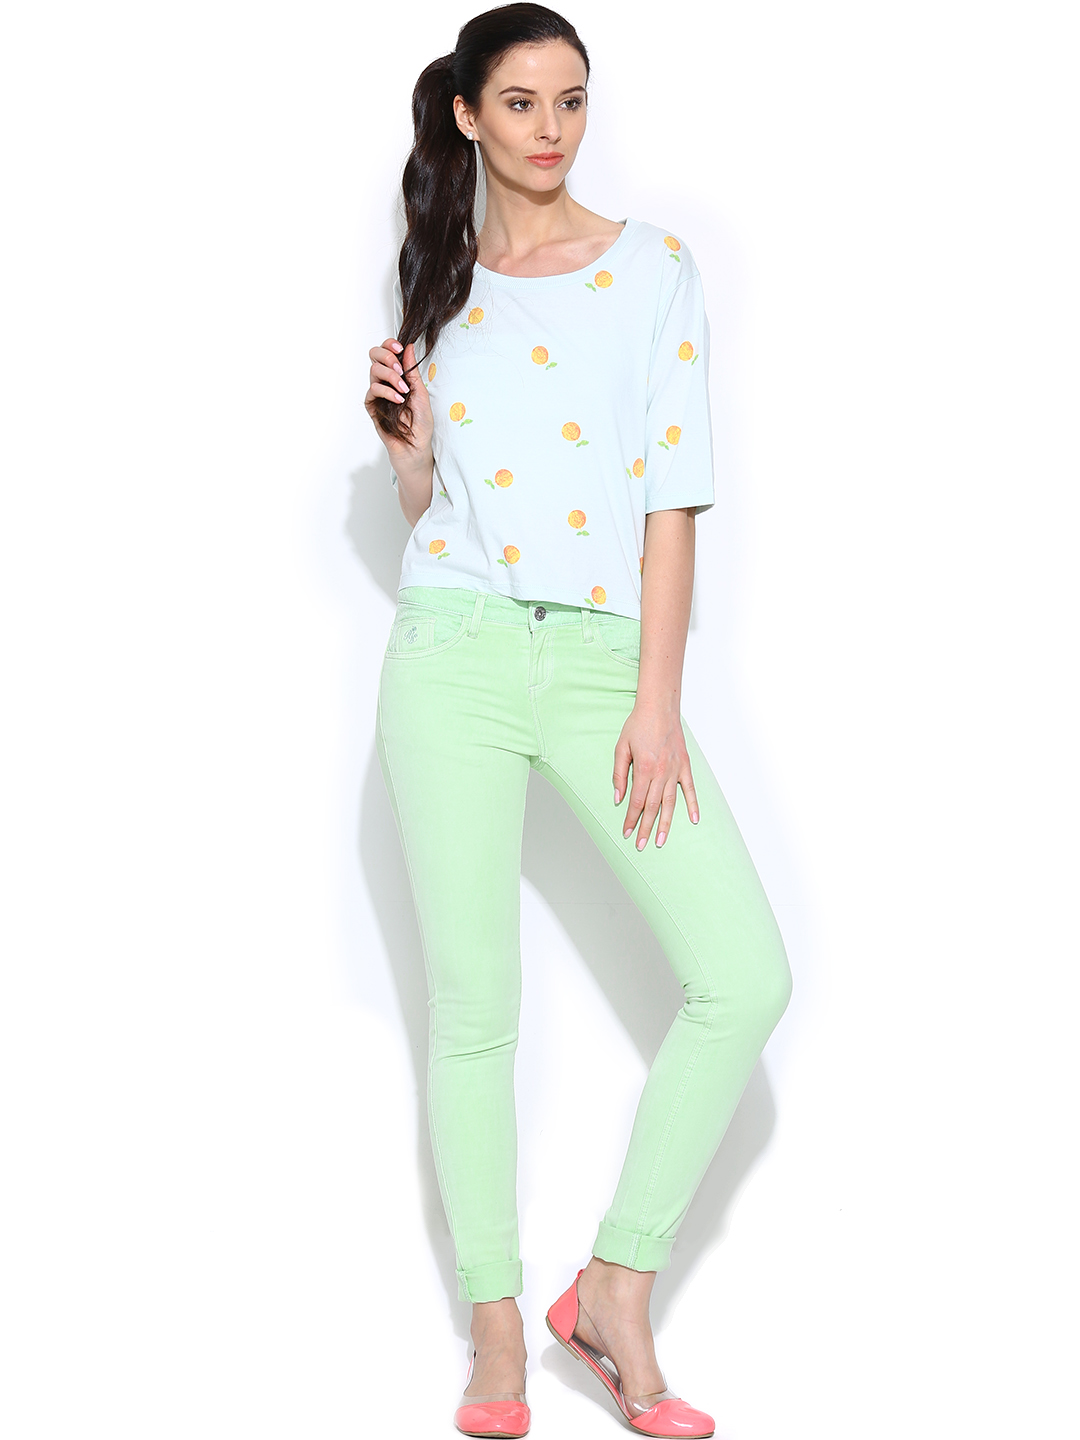 Model Womens Mint Green Skinny Jeans - Jean Yu Beauty